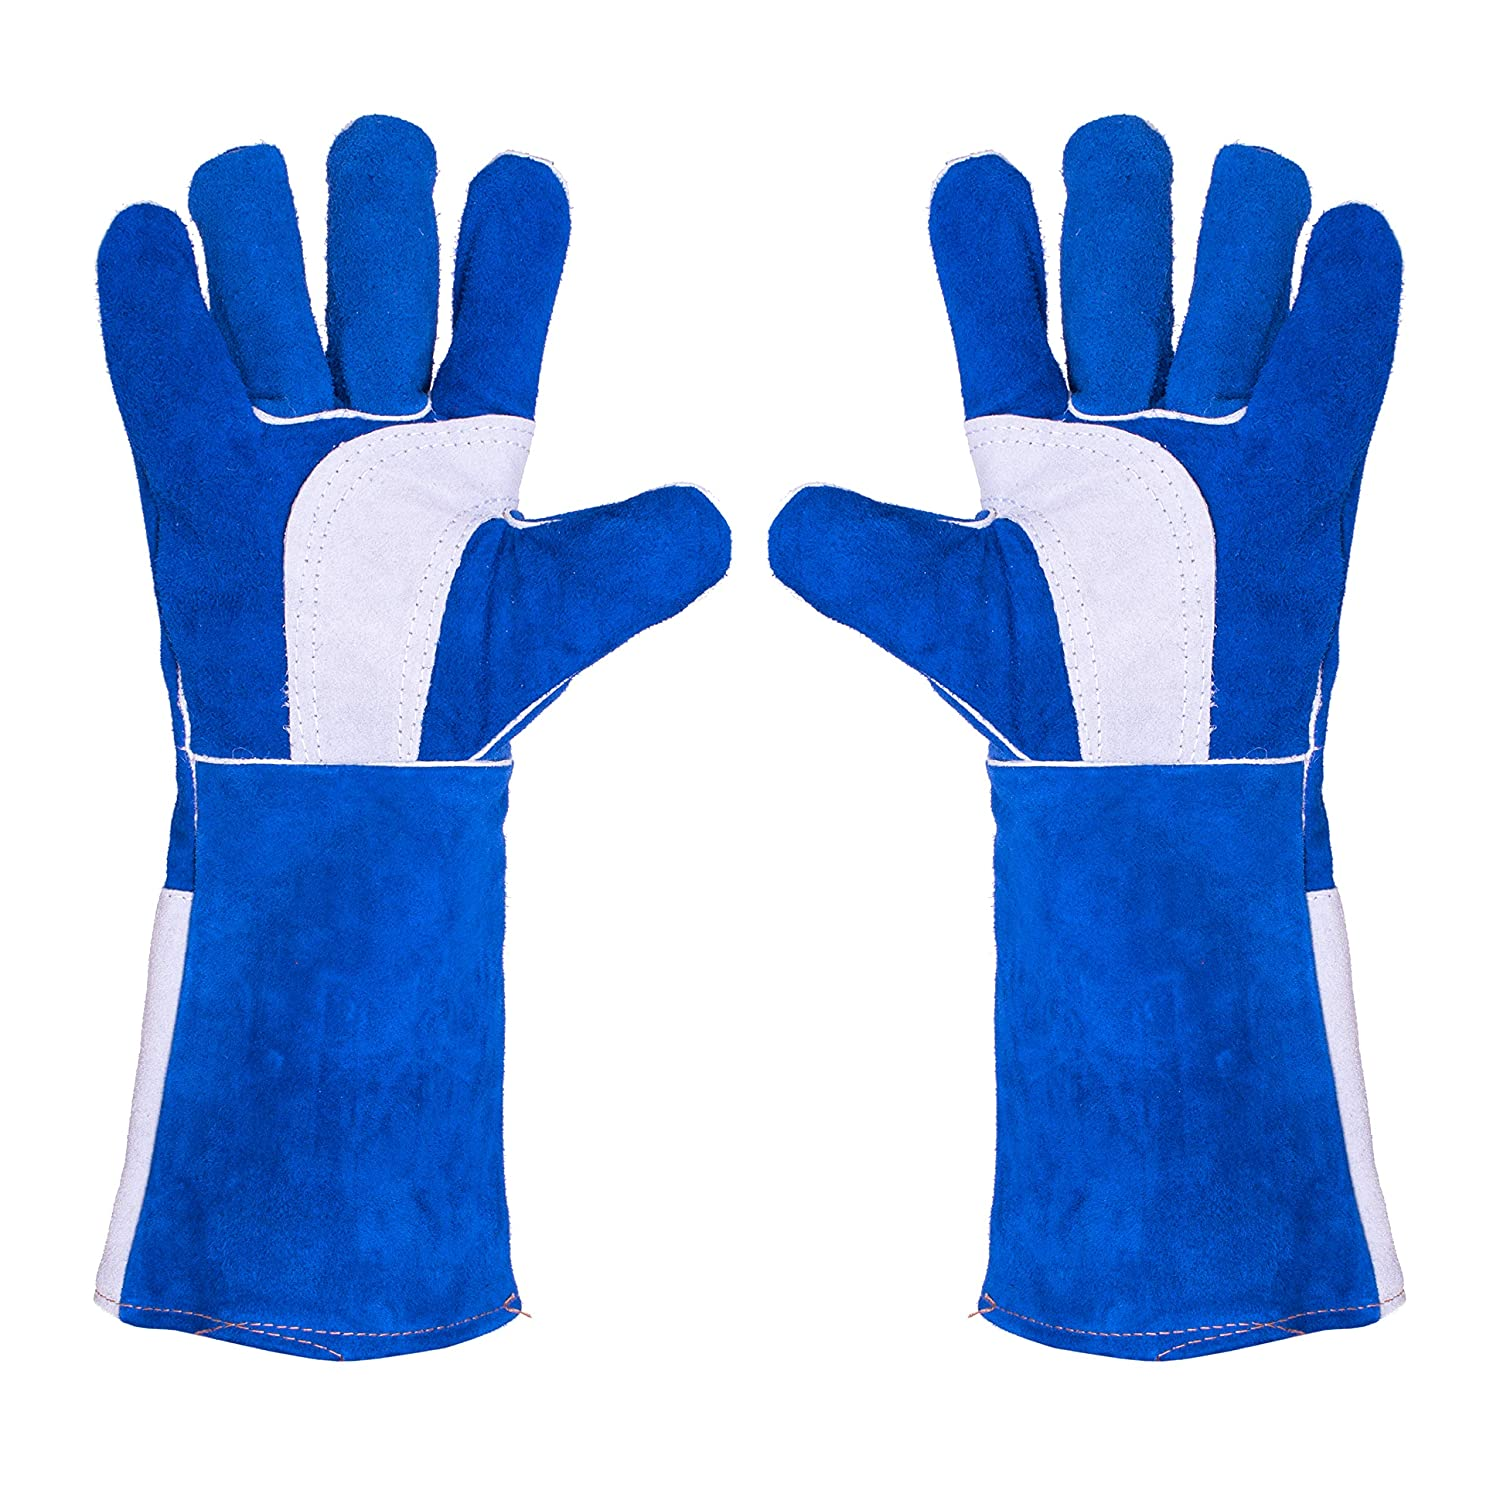 Cool Hand Large Leather Welding Gloves - Fire High Heat Resistant Gauntlet Welders Gloves, Fireplace Fireproof Grill Gloves, Dog Cat Animal Handling Gloves, 16 inch, Blue JLX 1200